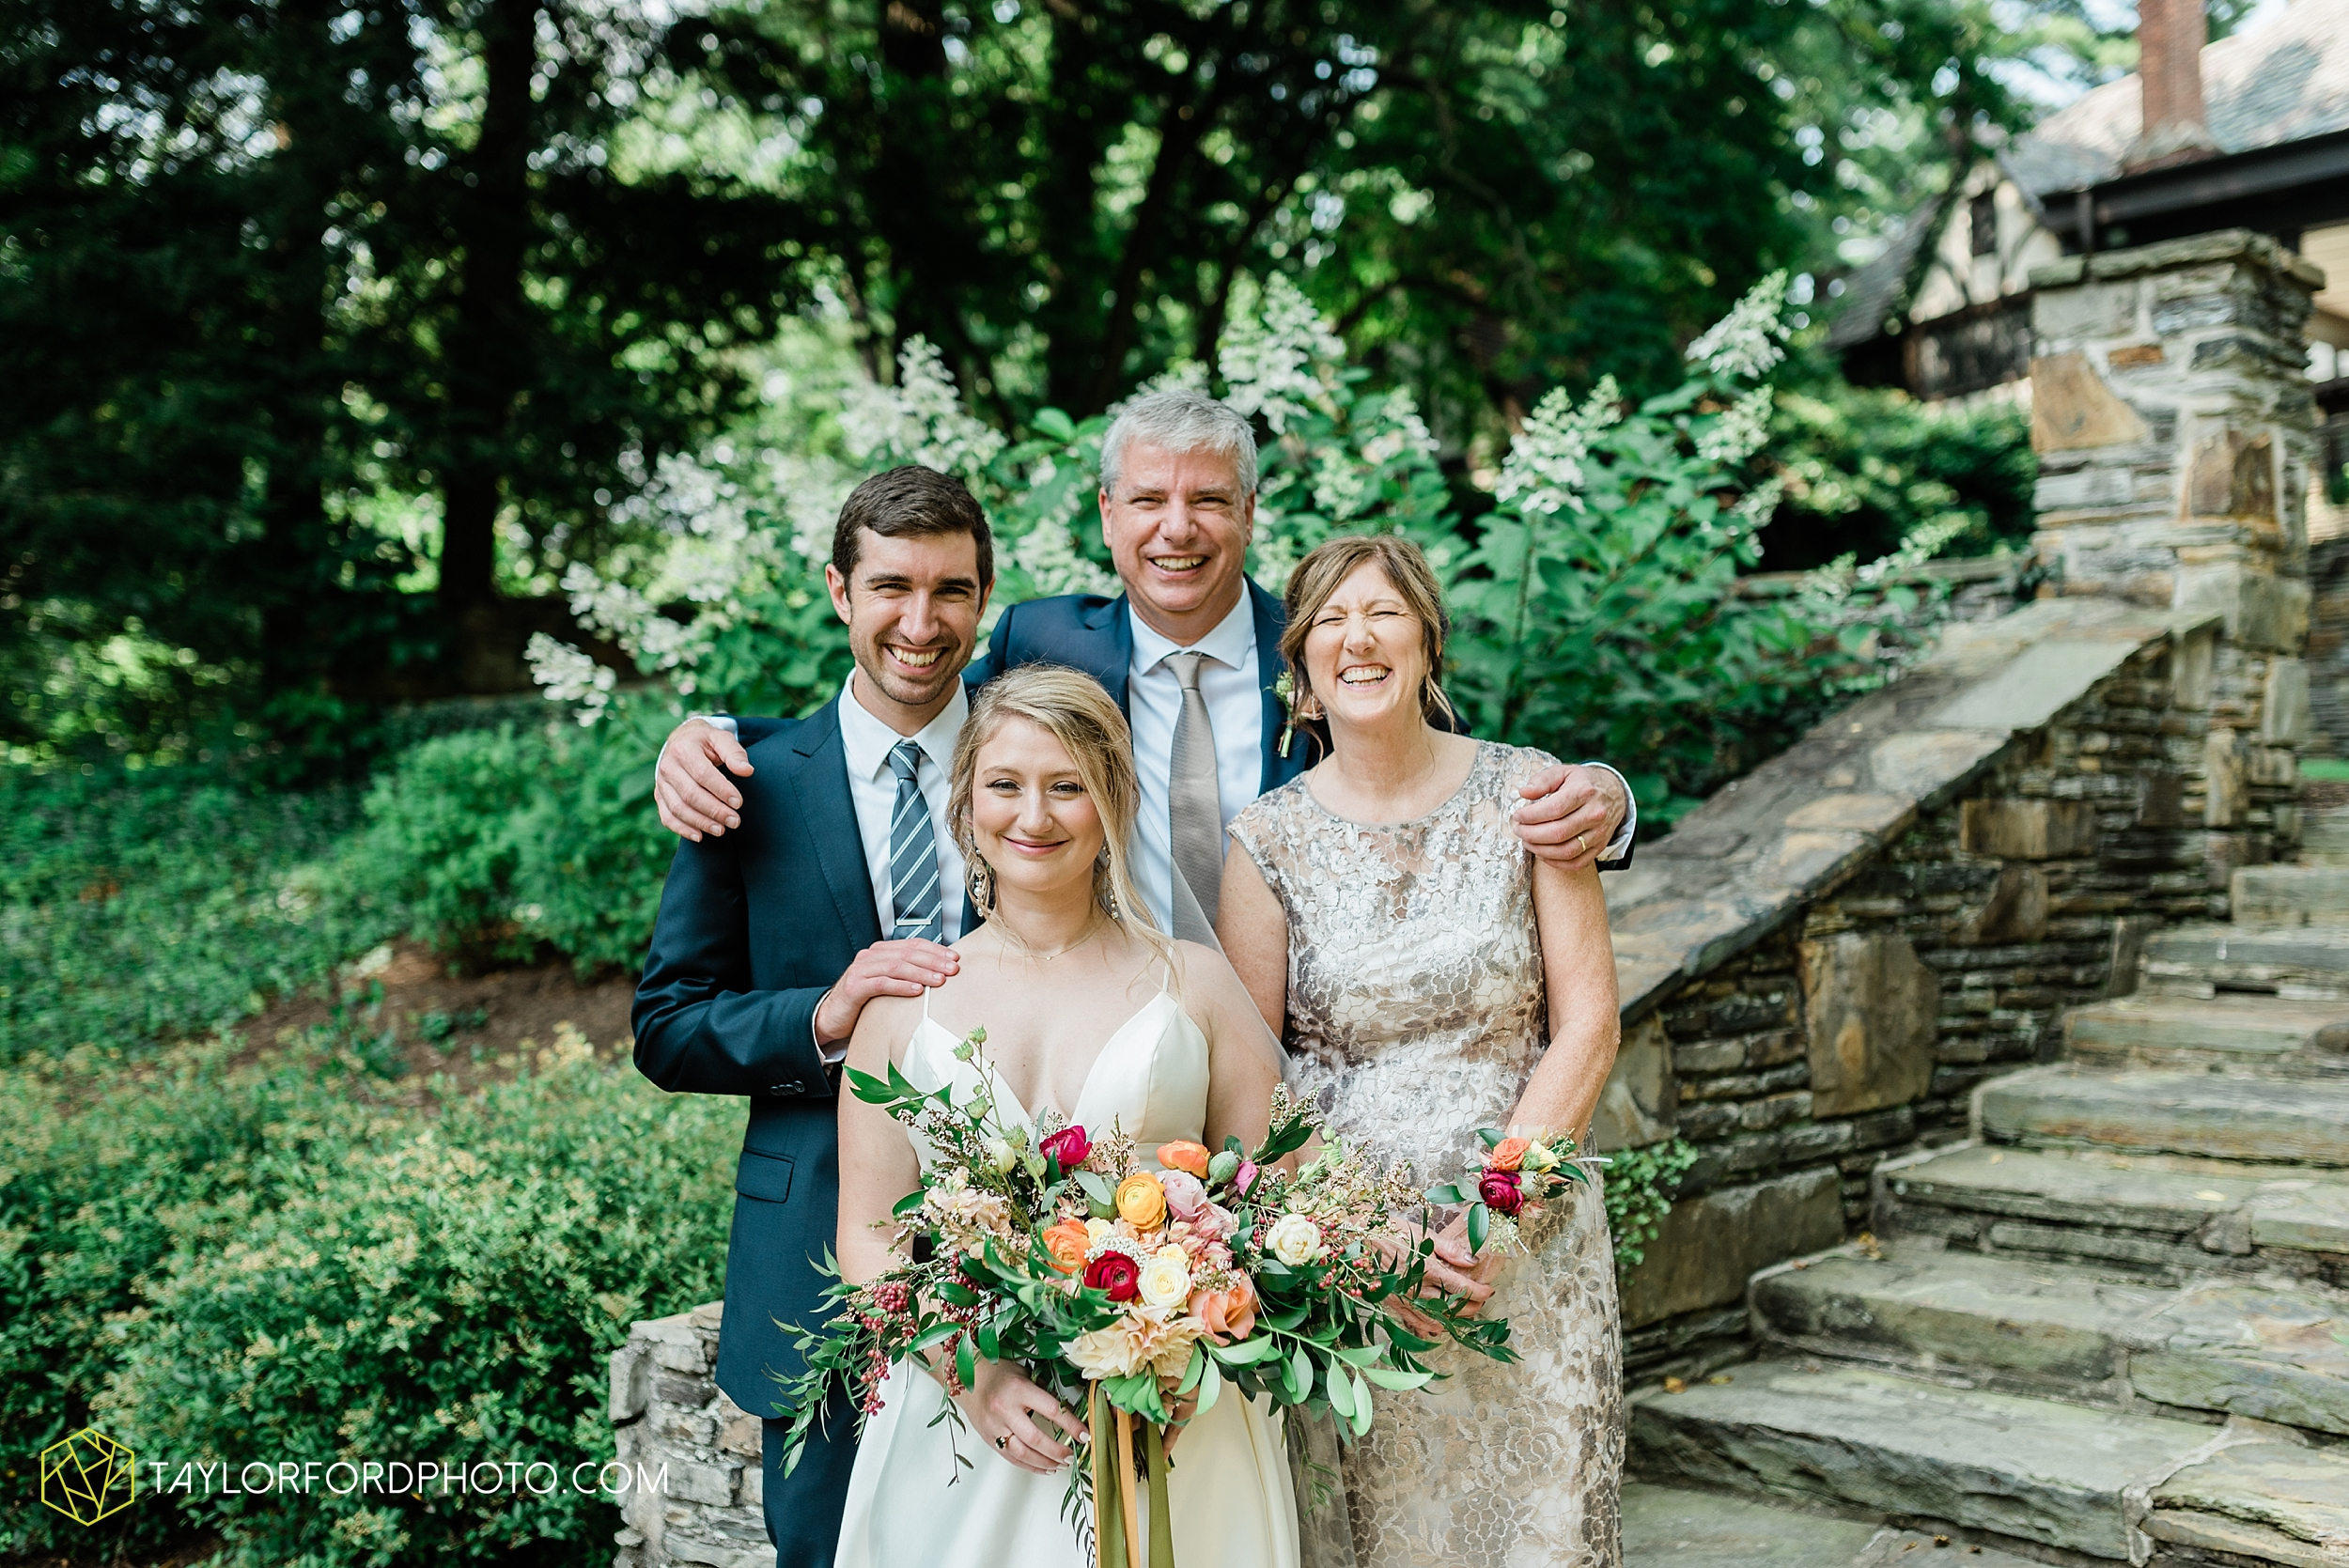 margot-may-evan-kohler-club-at-hillbrook-cleveland-chagrin-falls-outdoor-wedding-bhldn-gardenview-flowers-toledo-photographer-taylor-ford-photographer_9538.jpg